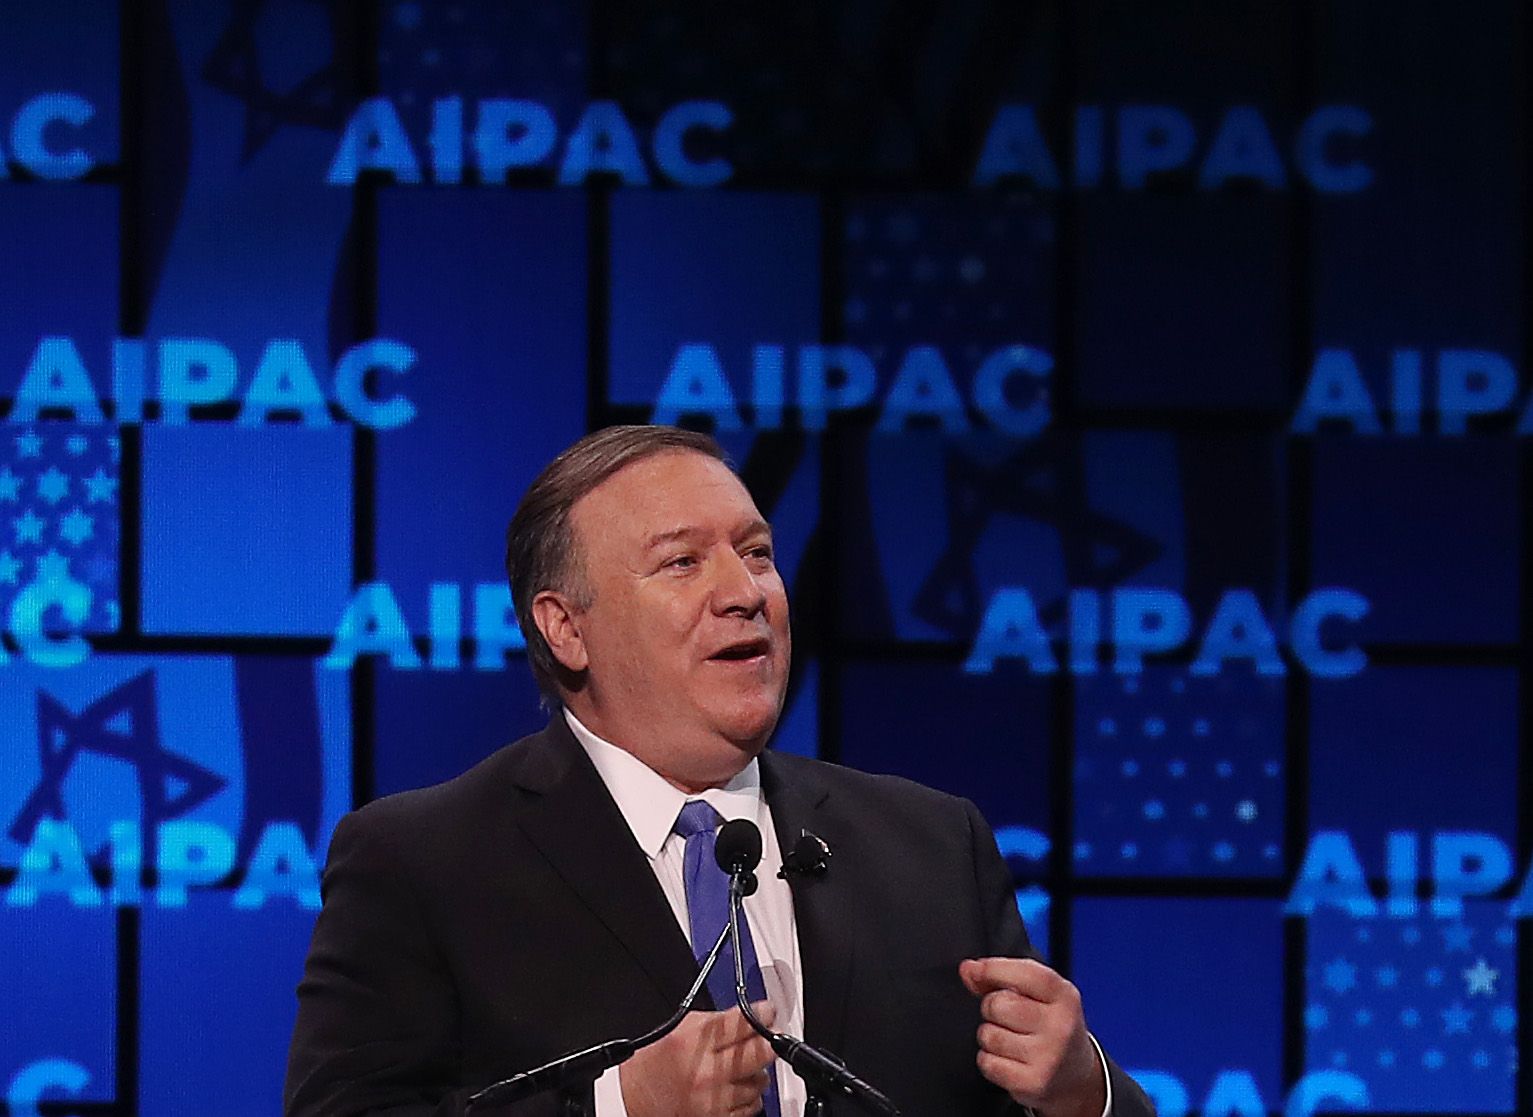 US Secretary of State Mike Pompeo speaks at the annual American Israel Public Affairs Committee (AIPAC) conference on March 25, 2019 in Washington, DC. (Photo by Mark Wilson/Getty Images)